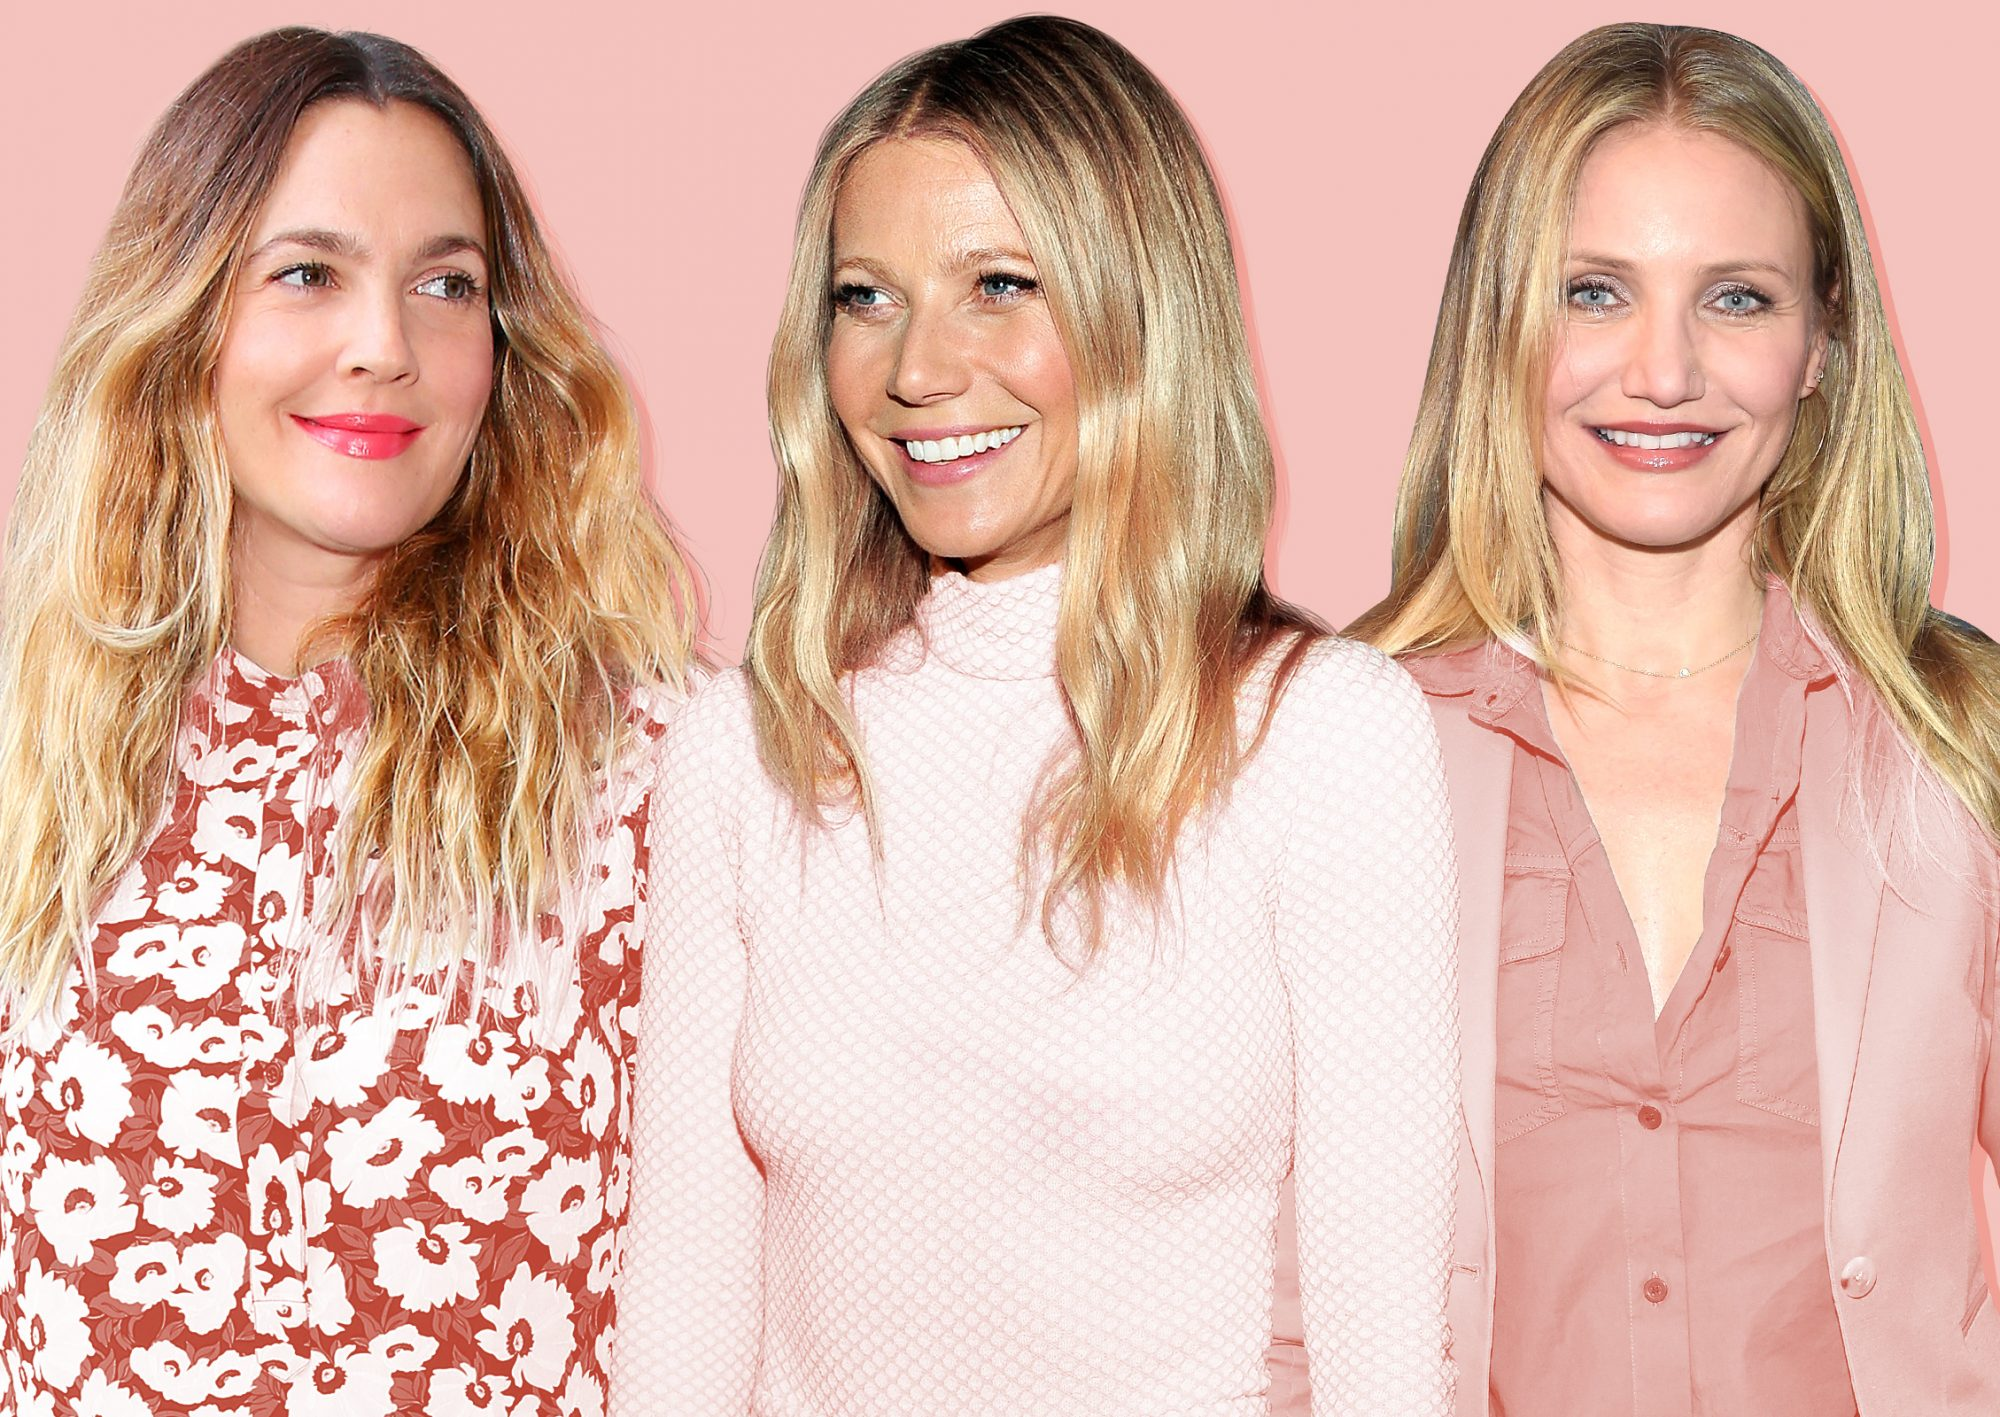 Cameron Diaz Getting Fucked gwyneth paltrow, drew barrymore, and cameron diaz let us